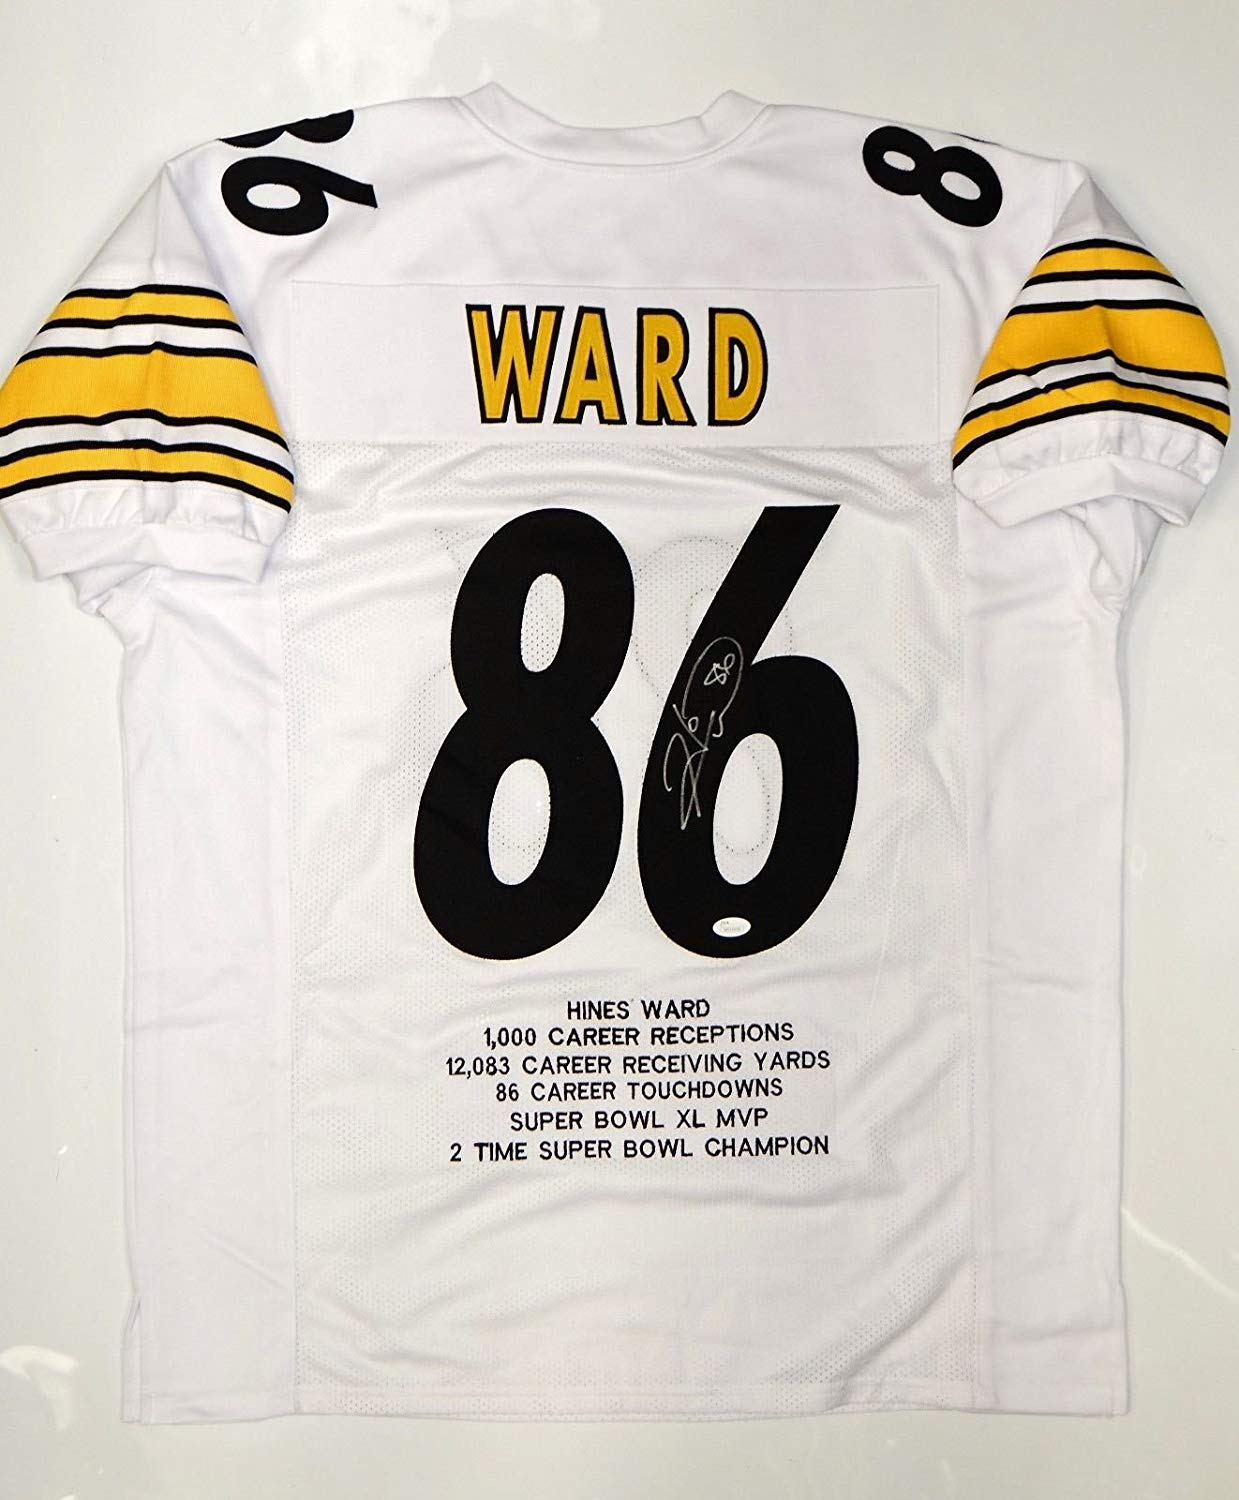 d55588bb0ef Get Quotations · Hines Ward Autographed White Pro Style Jersey w  Stats and JSA  Witnessed Auth